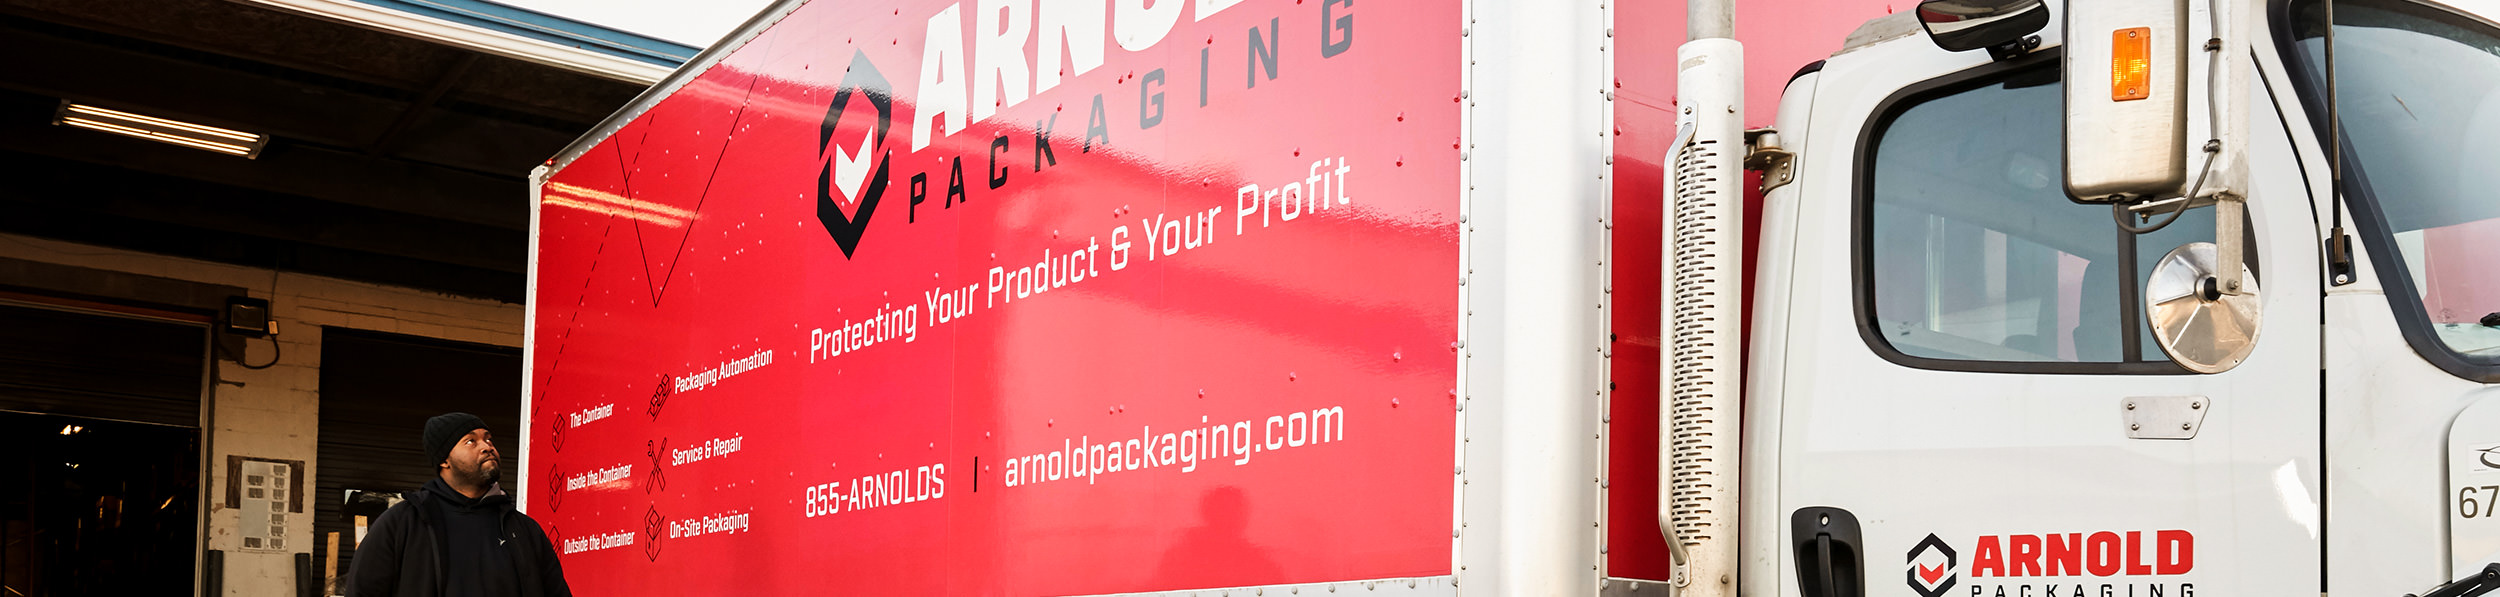 Arnold Packaging Truck